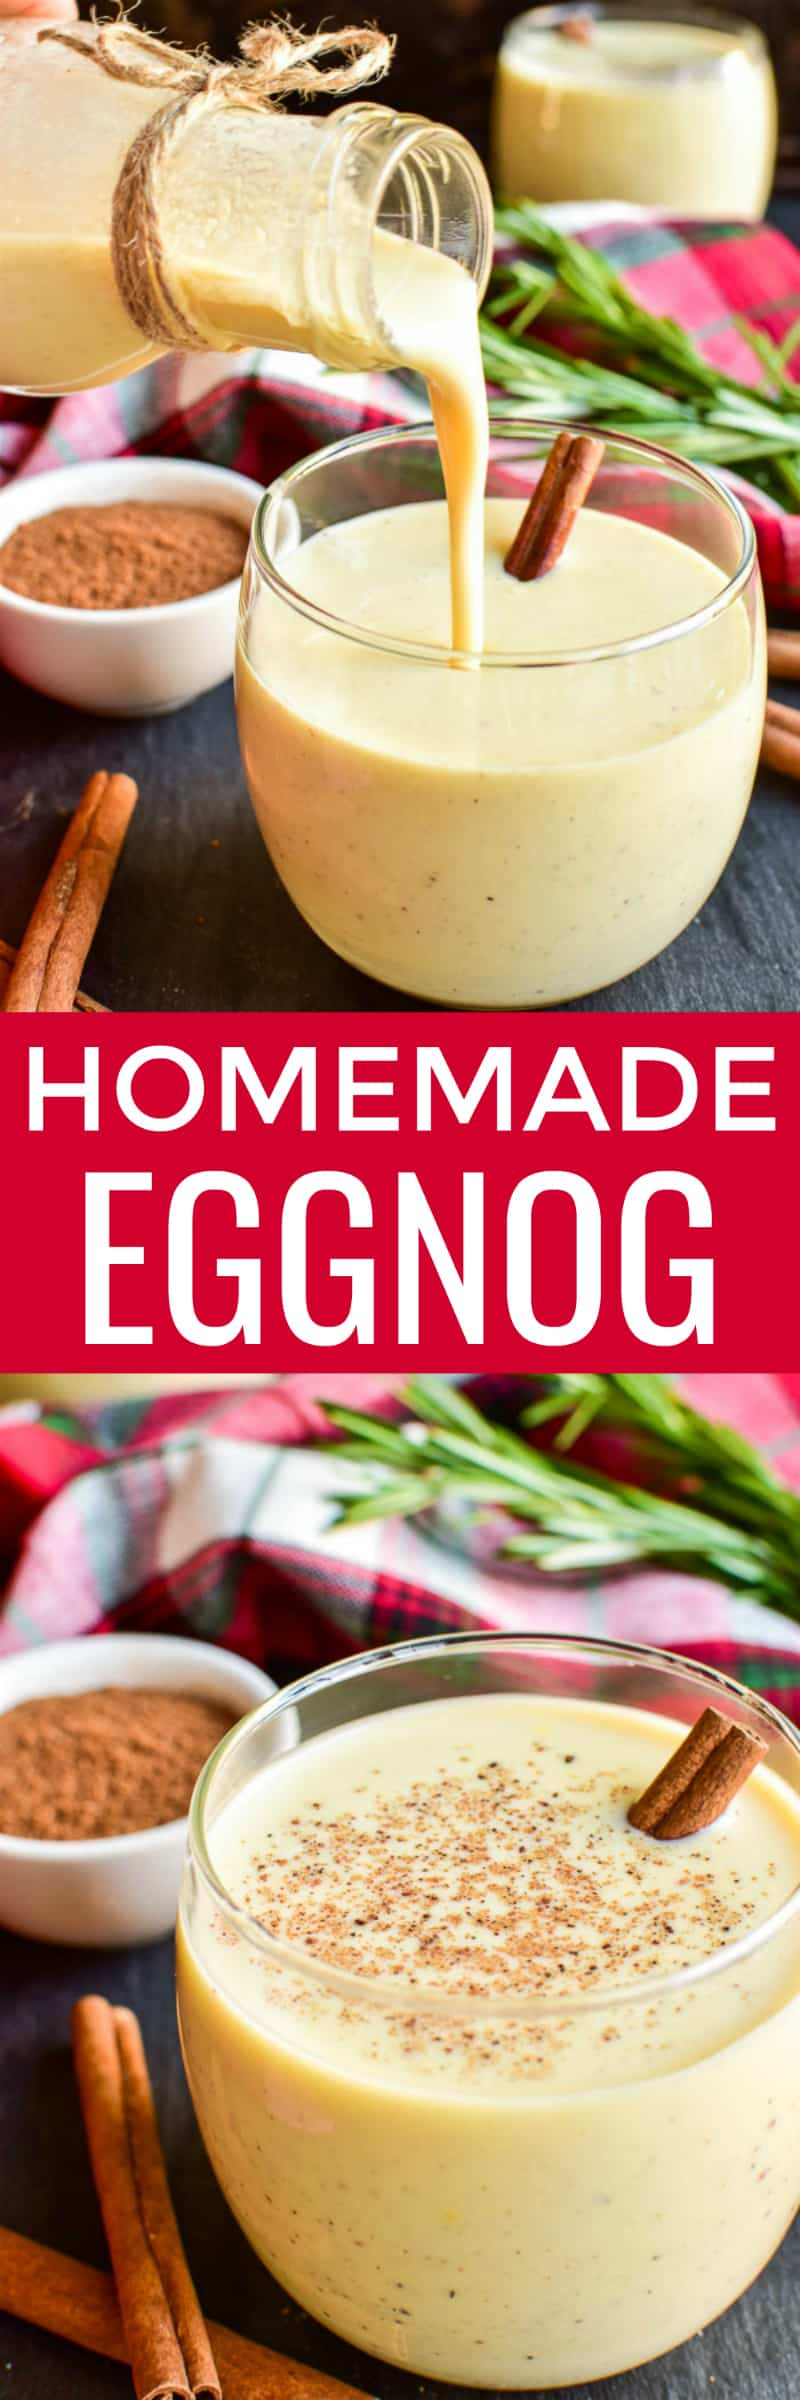 Collage image of Homemade Eggnog